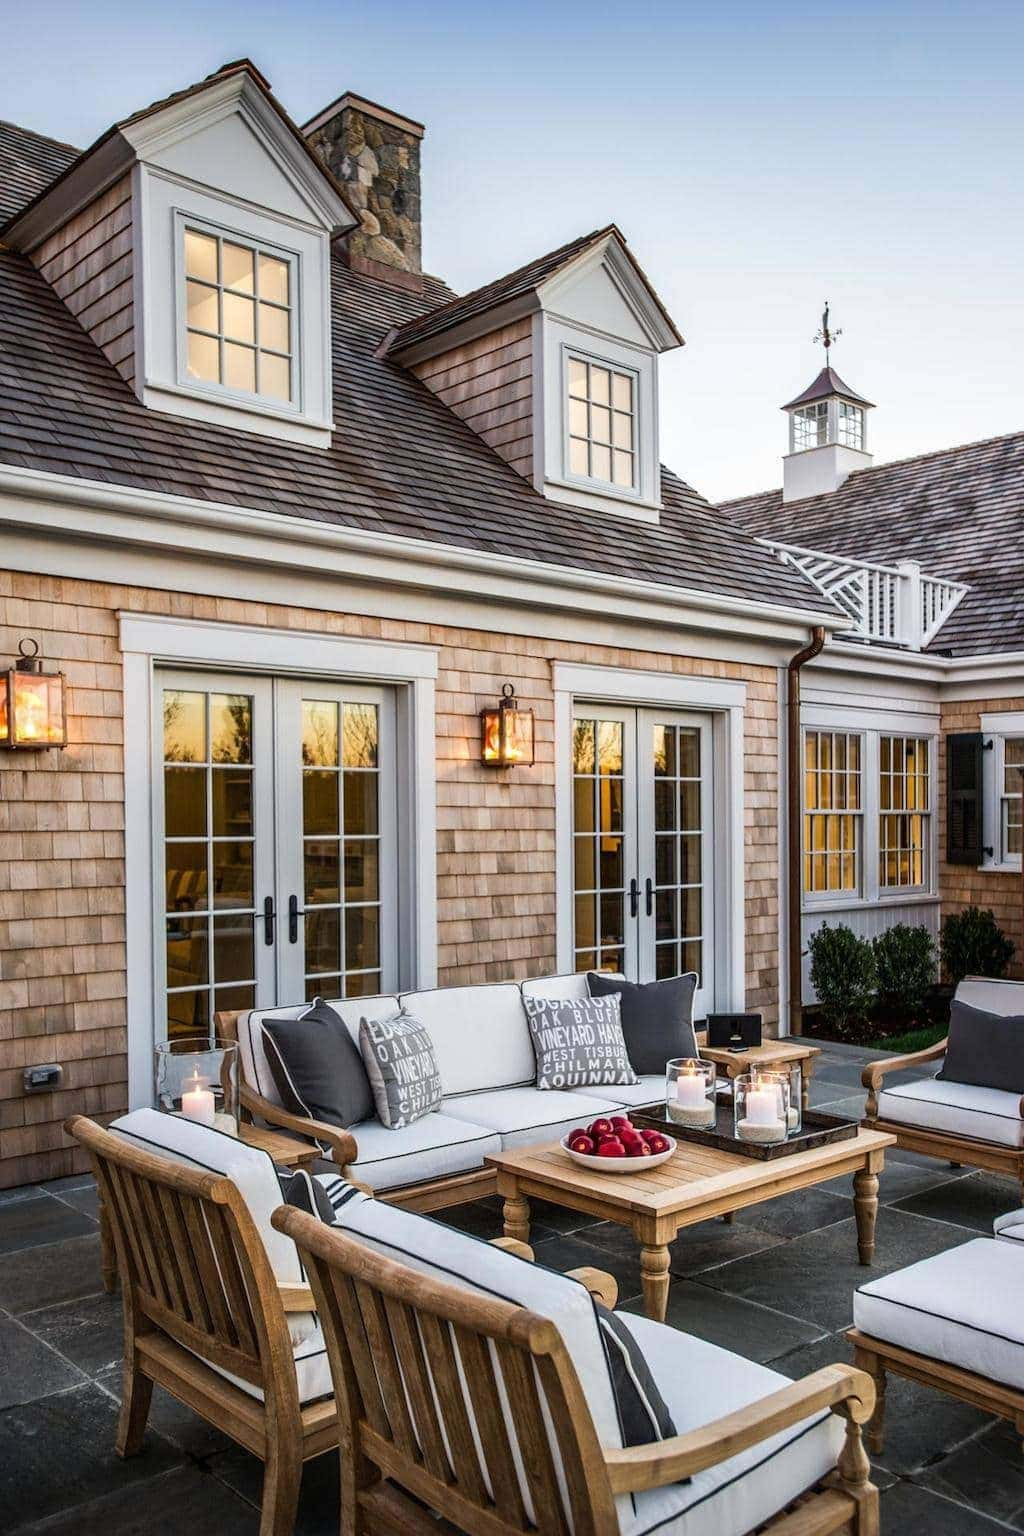 HGTV Dream Home patio with beautiful Ethan Allen Furniture, French Doors & lanterns